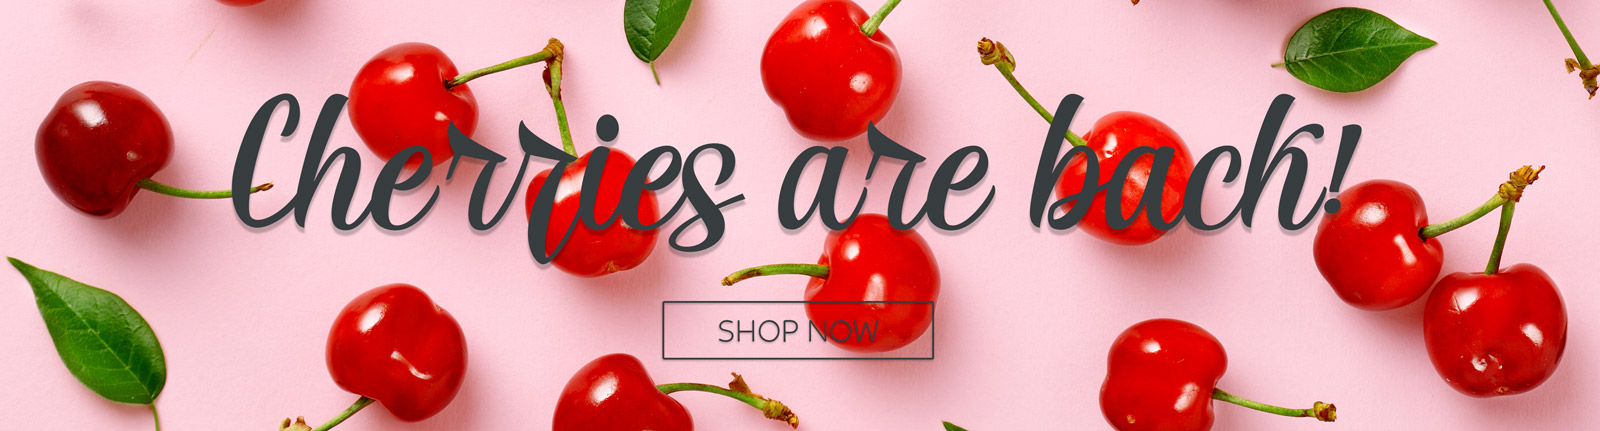 Cherries are Back